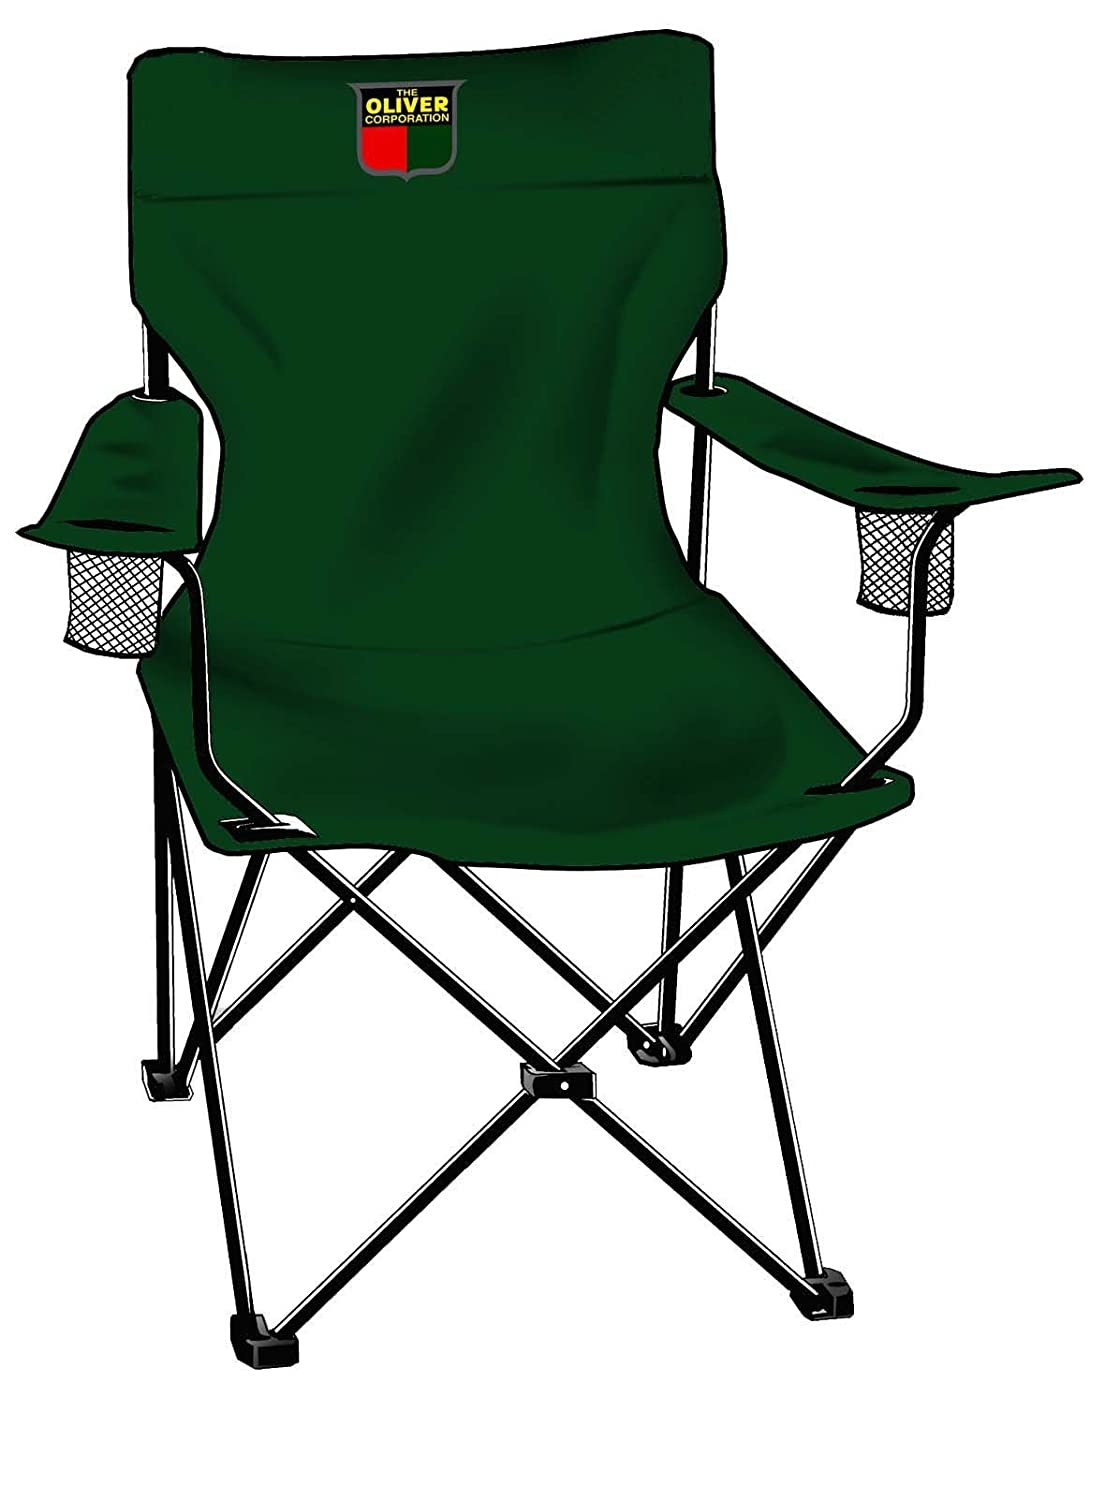 Oliver Tractor Adult Camp Chair with Bag